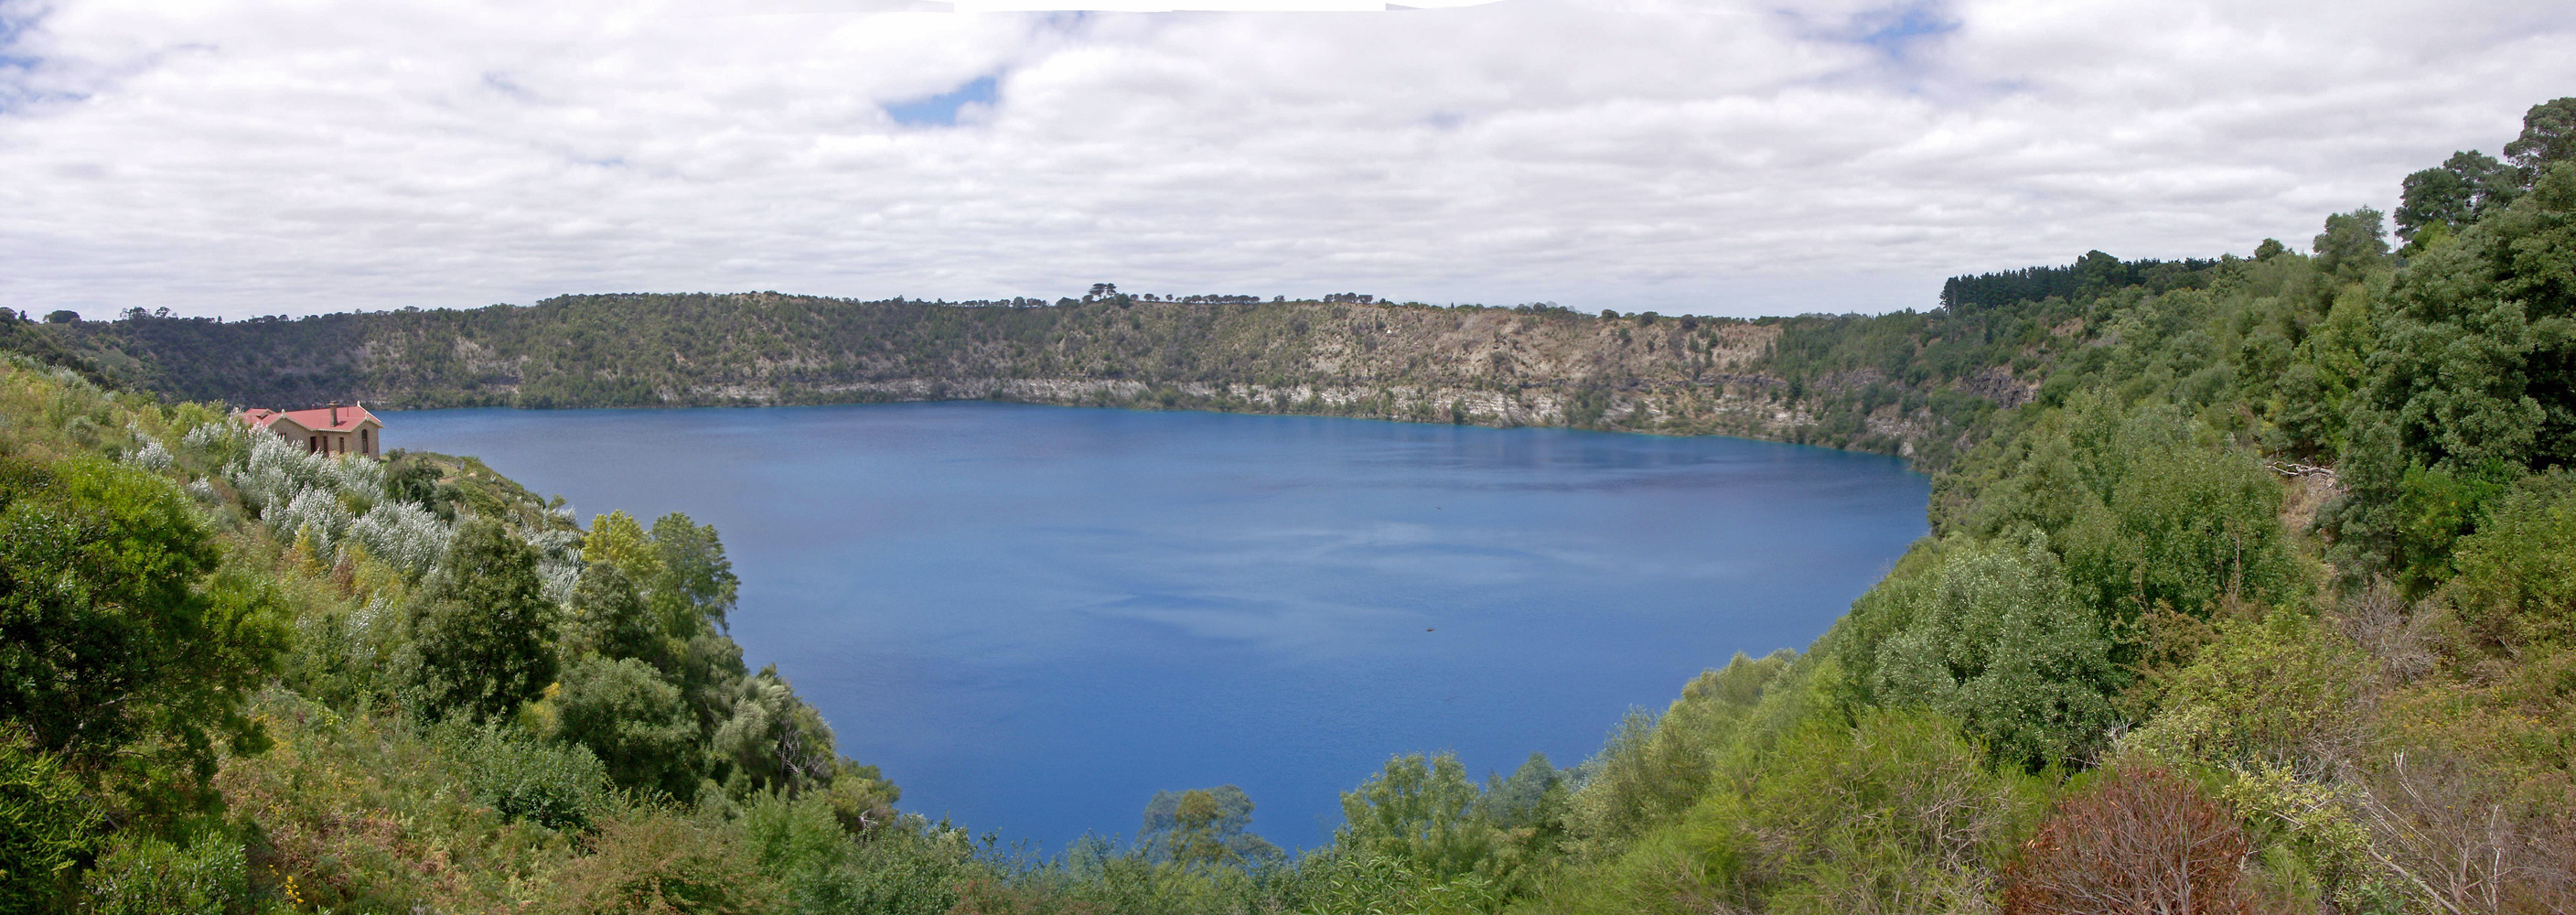 Mount Gambier Australia  city pictures gallery : Blue Lake Mount Gambier Australia Wikimedia Commons